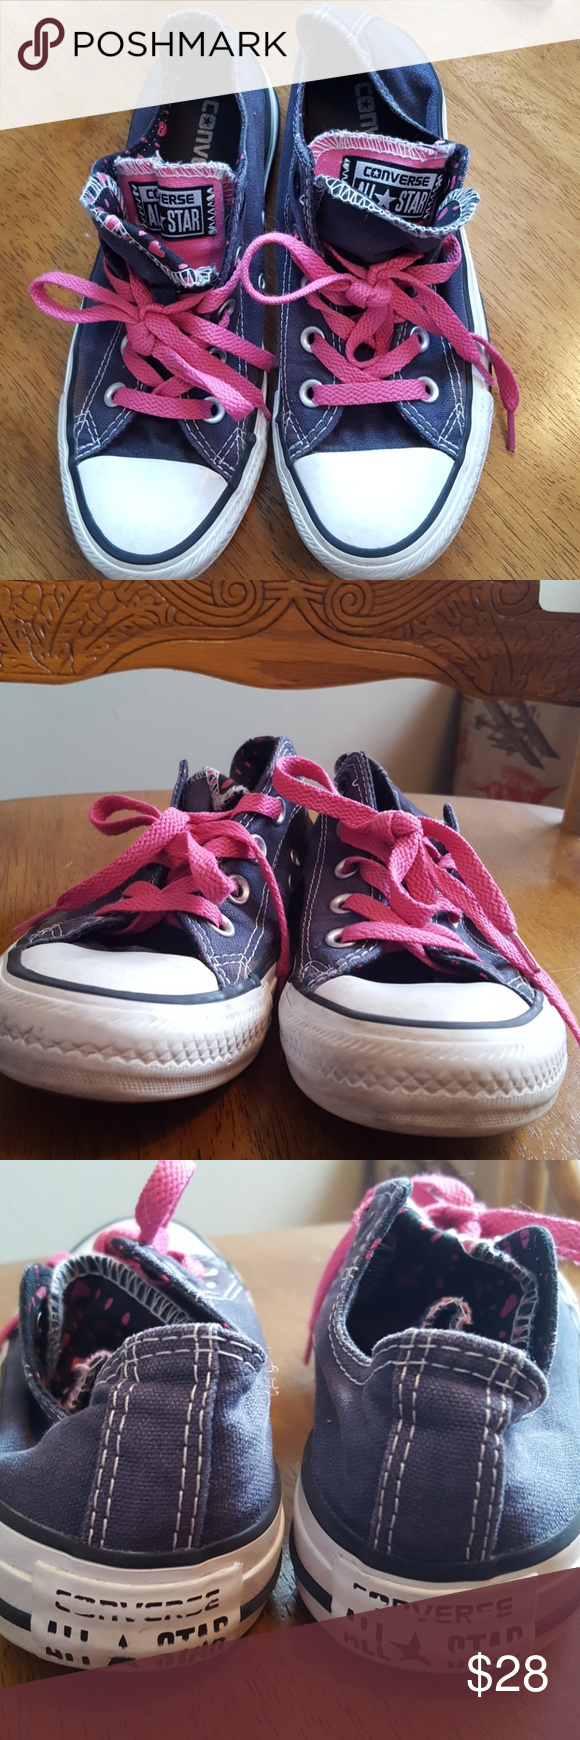 Converse All Stars Double tongue Navy,Pink & Blk Converse